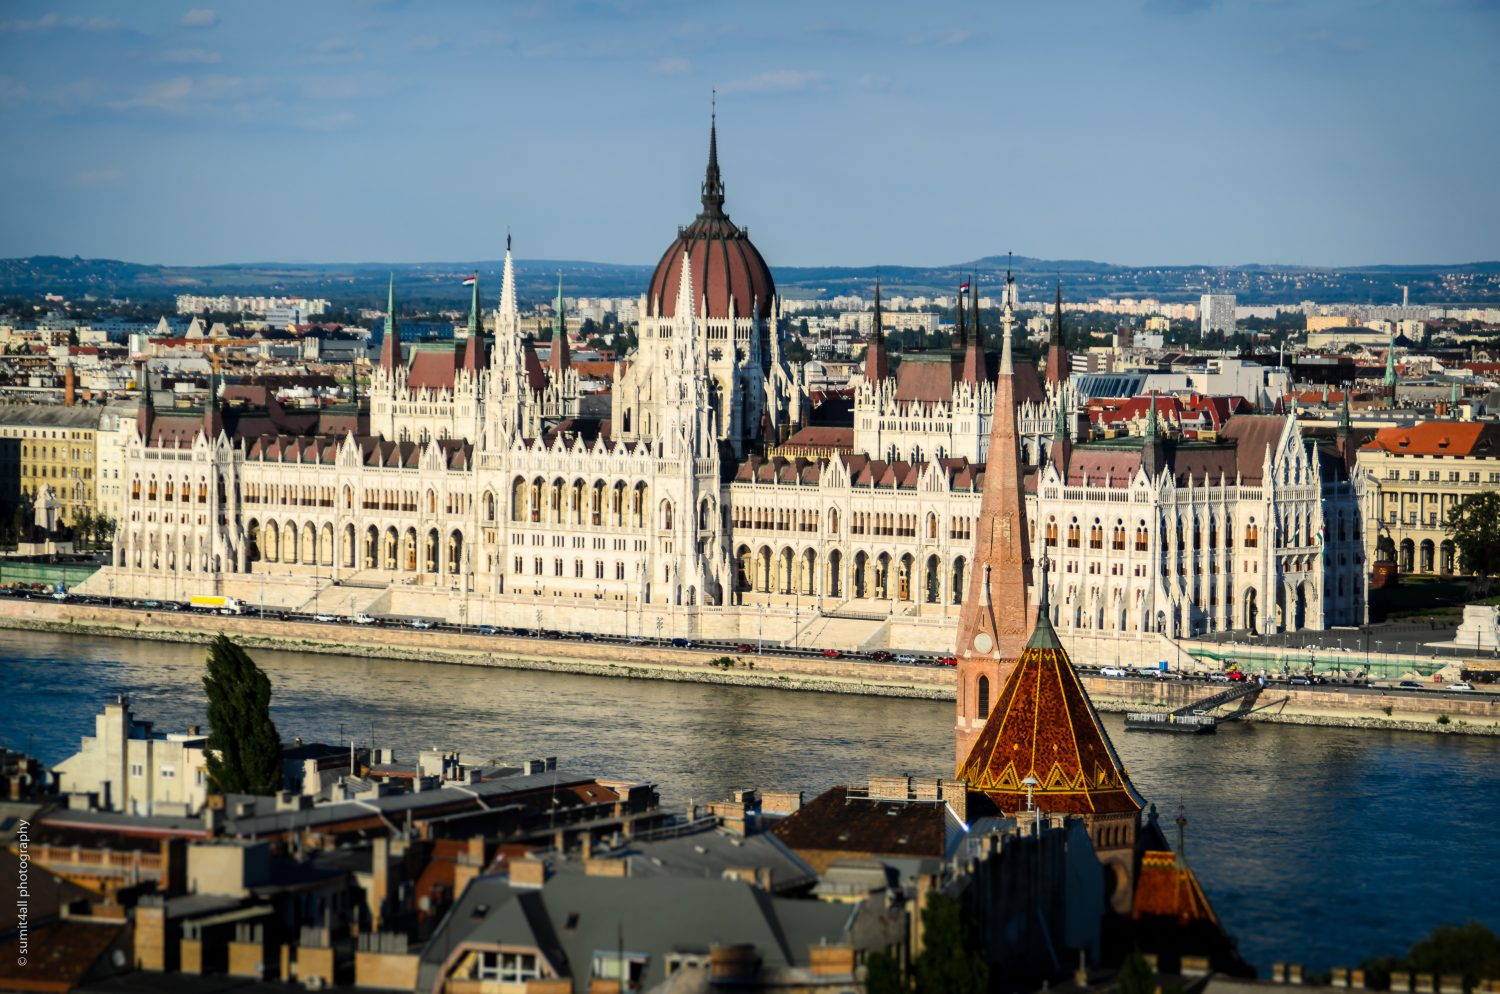 The Hungarian Parliament building as seen from across the Danube river